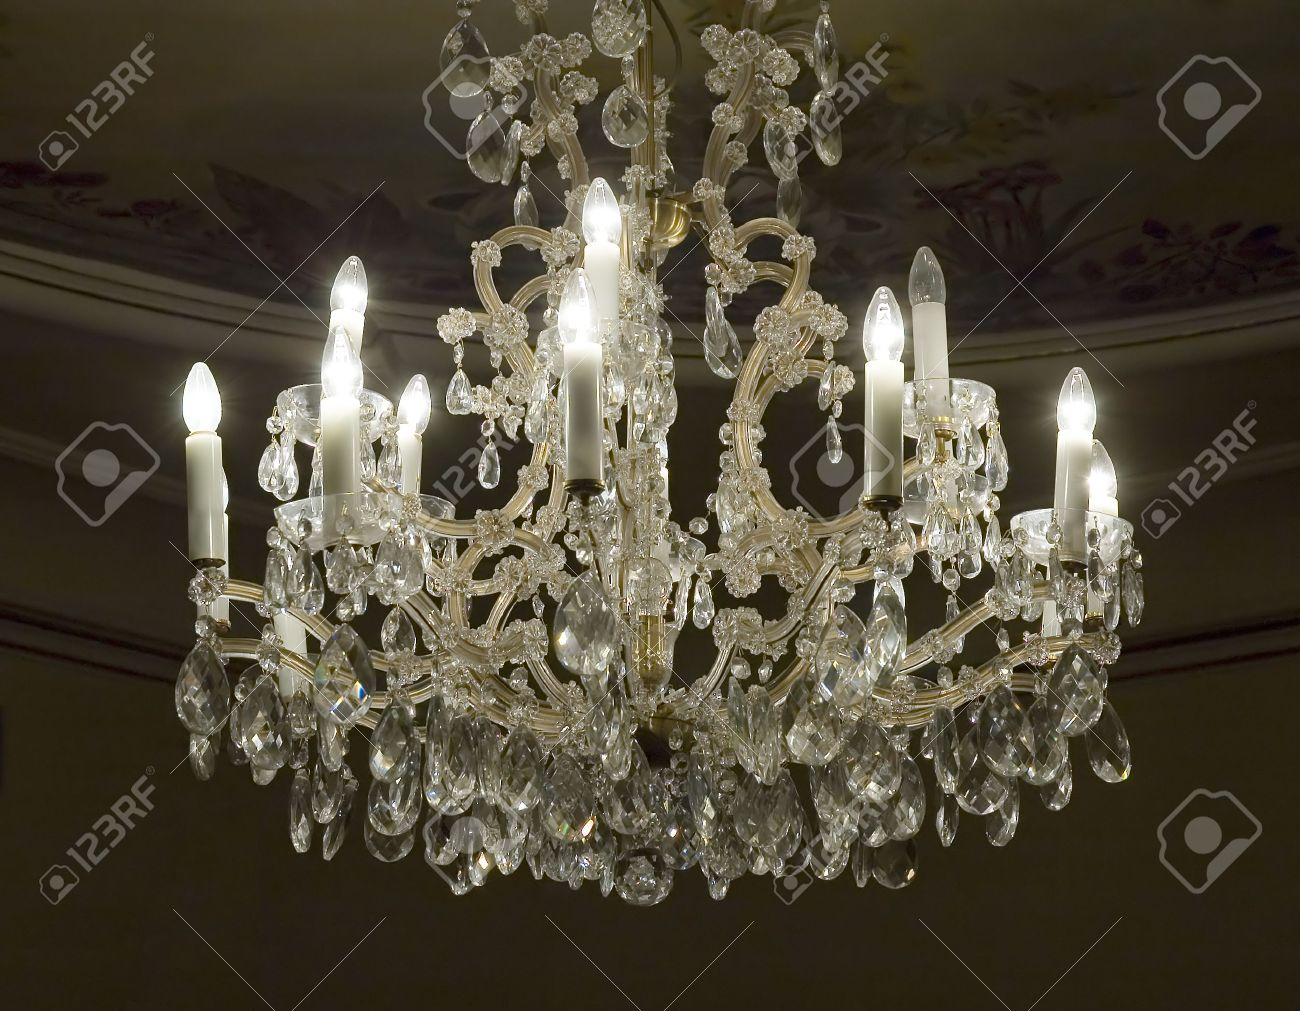 Antique Crystal Chandelier Stock Photo, Picture And Royalty Free ...